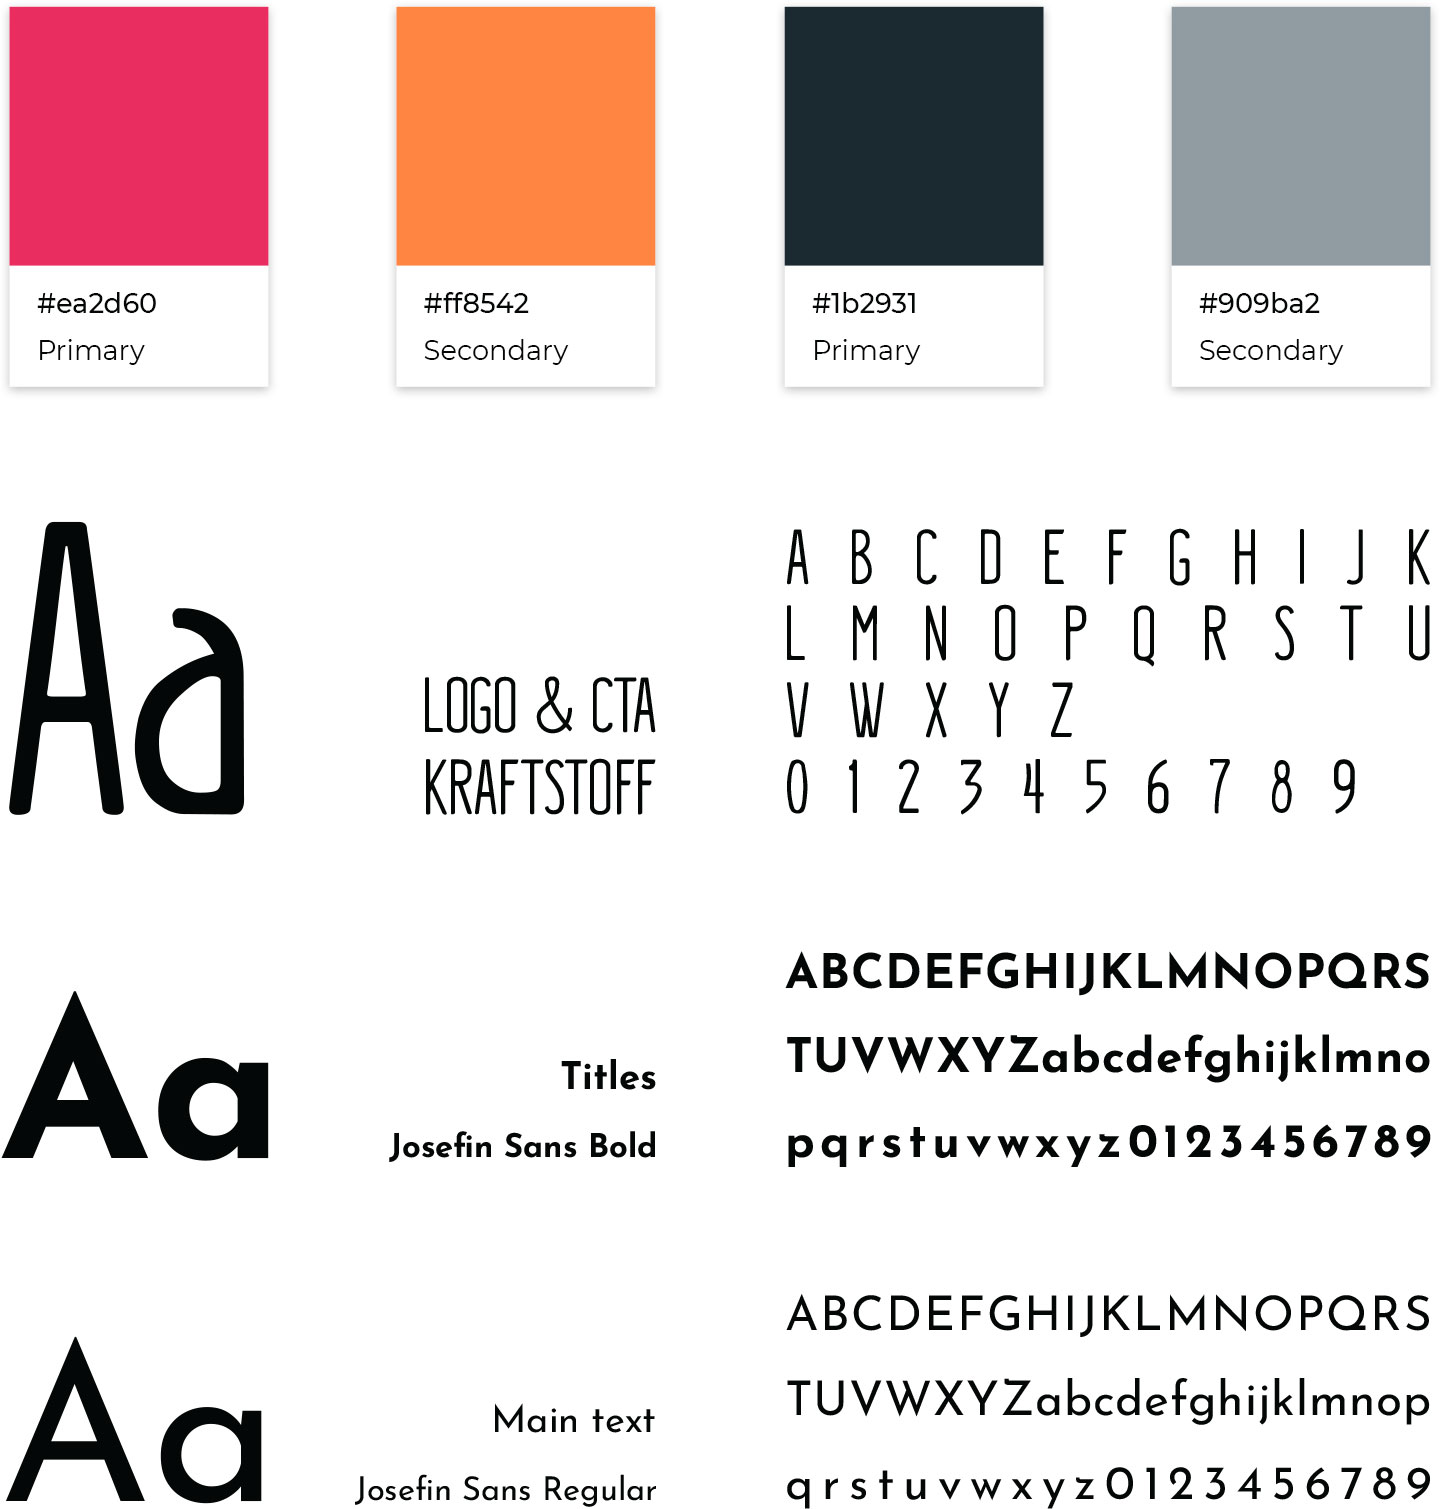 Firstserved fonts and colors used